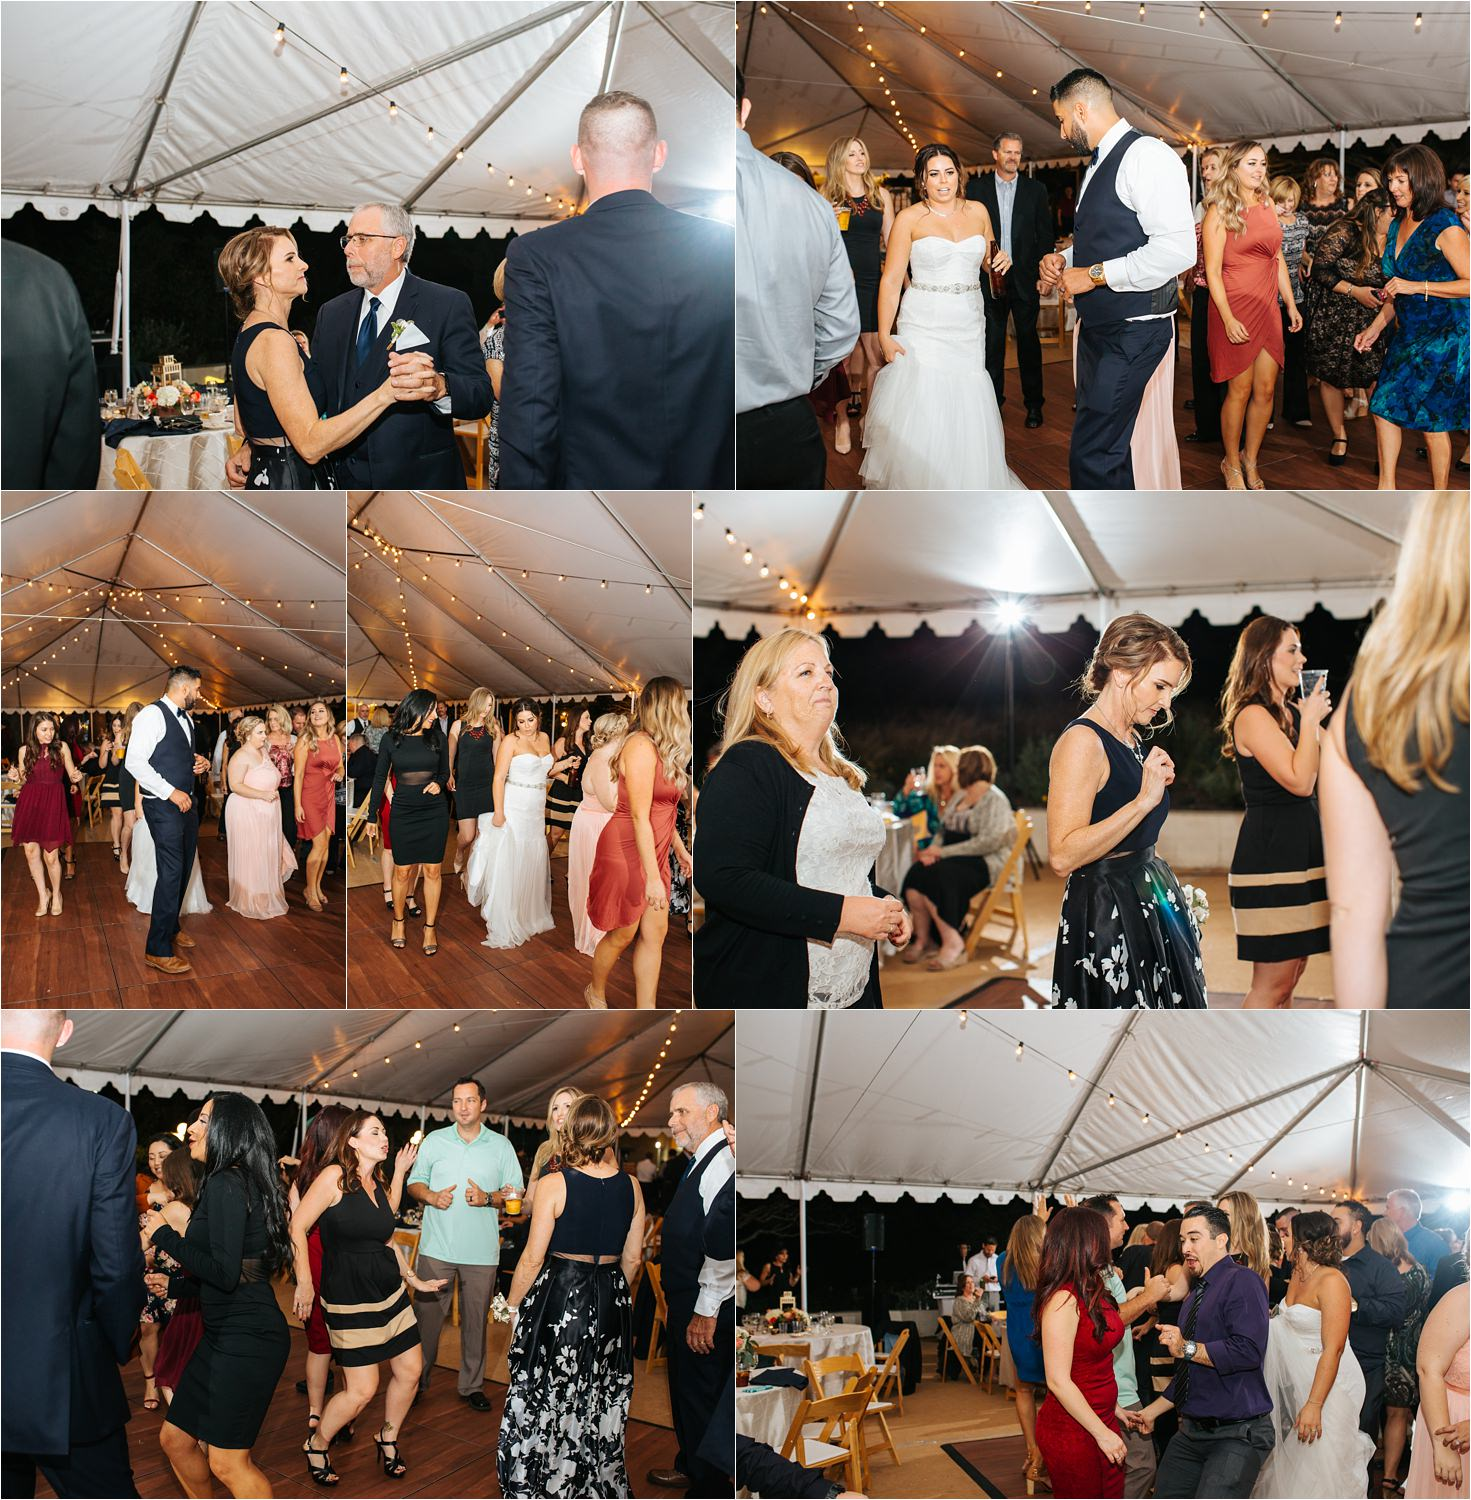 Dancing Photos at Wedding Reception in Southern California - http://brittneyhannonphotography.com